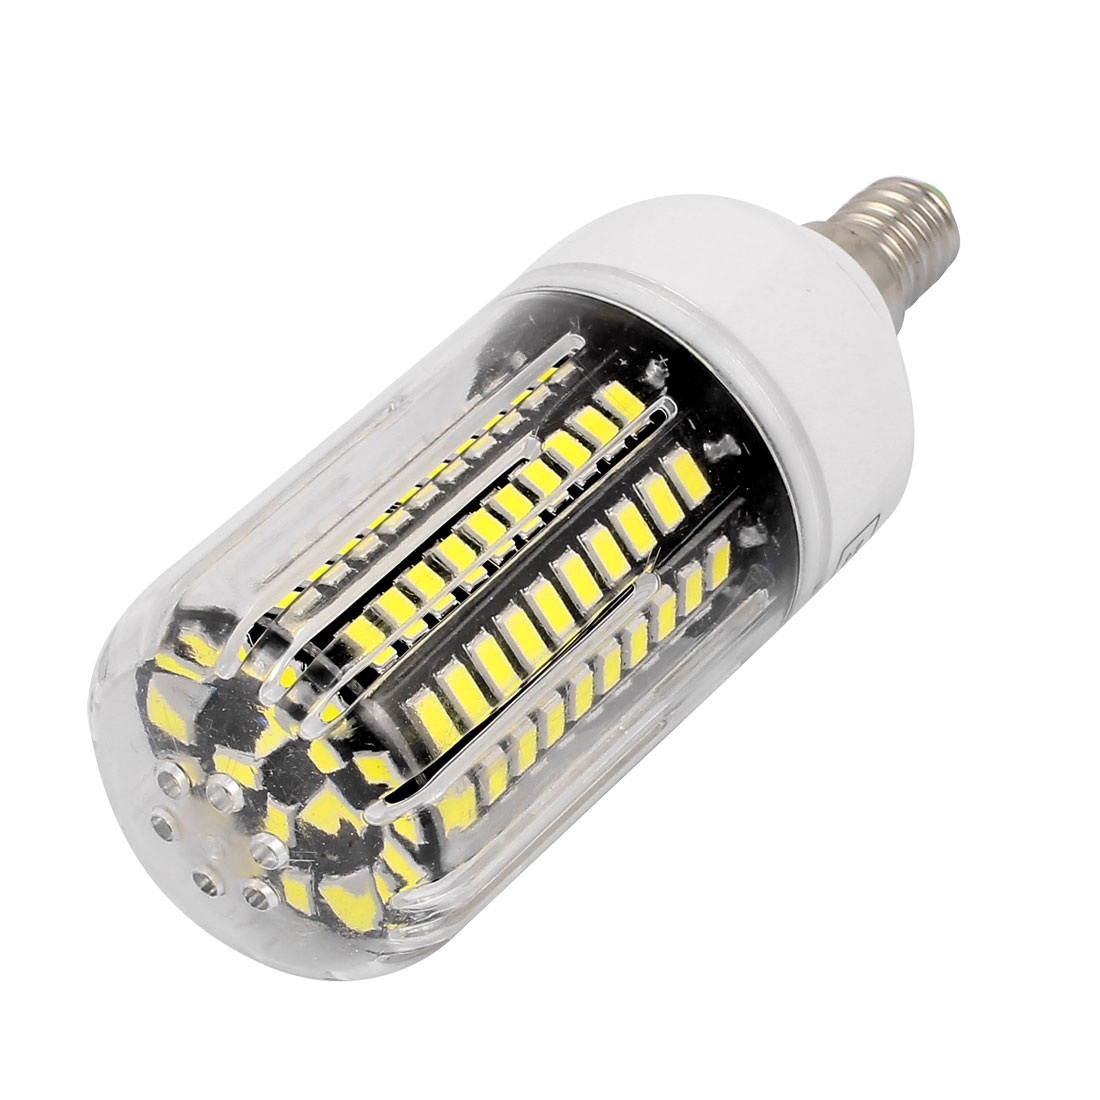 85V~265V 12W 120 x 5736SMD E14 LED Corn Bulb Light Lamp Energy Saving Pure White